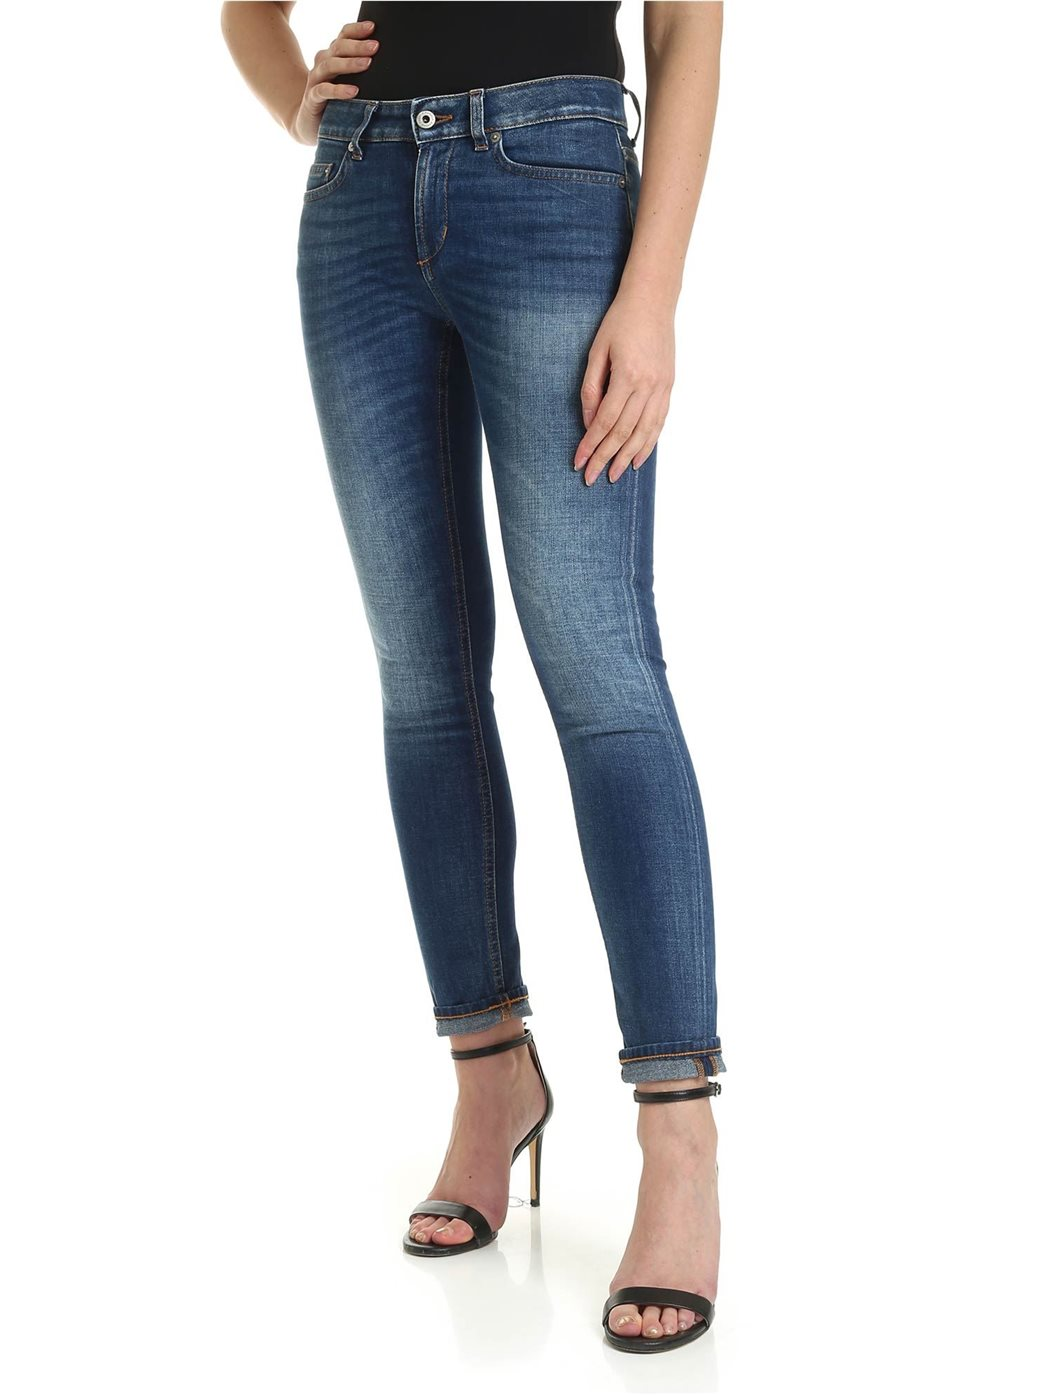 DONDUP P692 DD800 JEANS